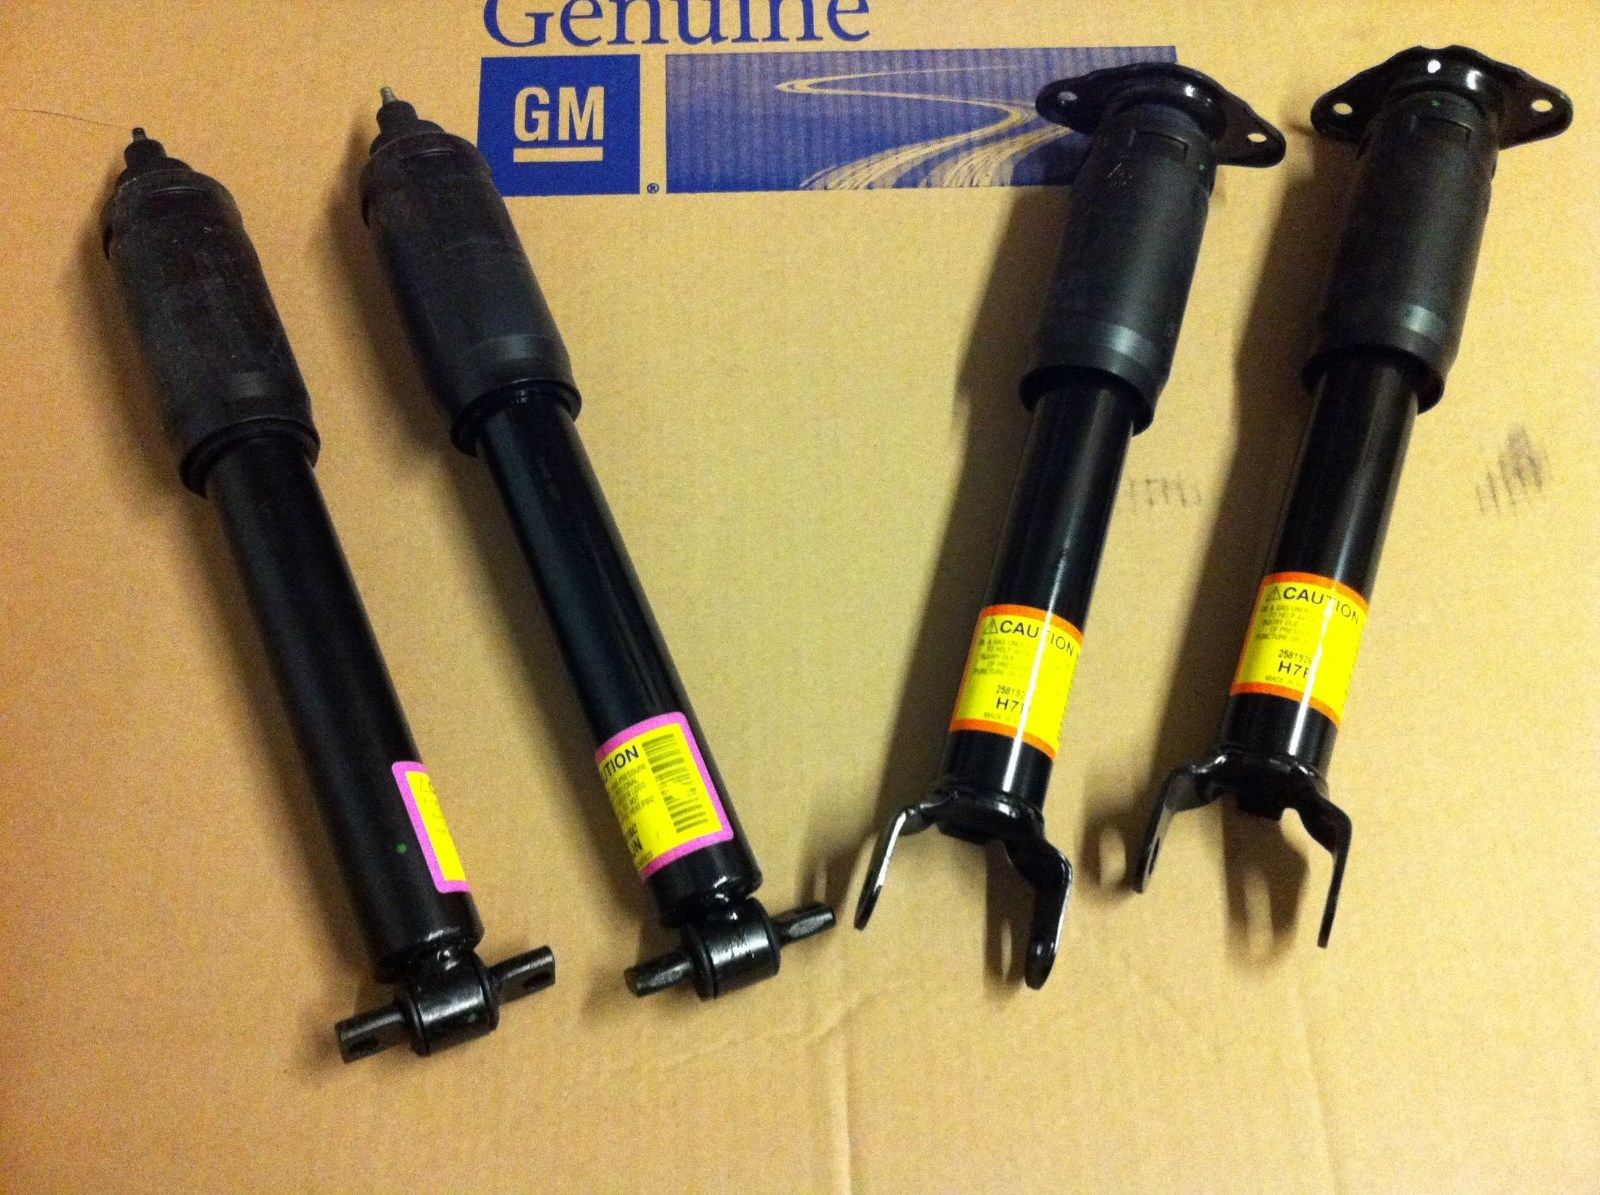 C5 Corvette All and C6 Z06 Front Shock Suspension Replacement or Upgrade, Single